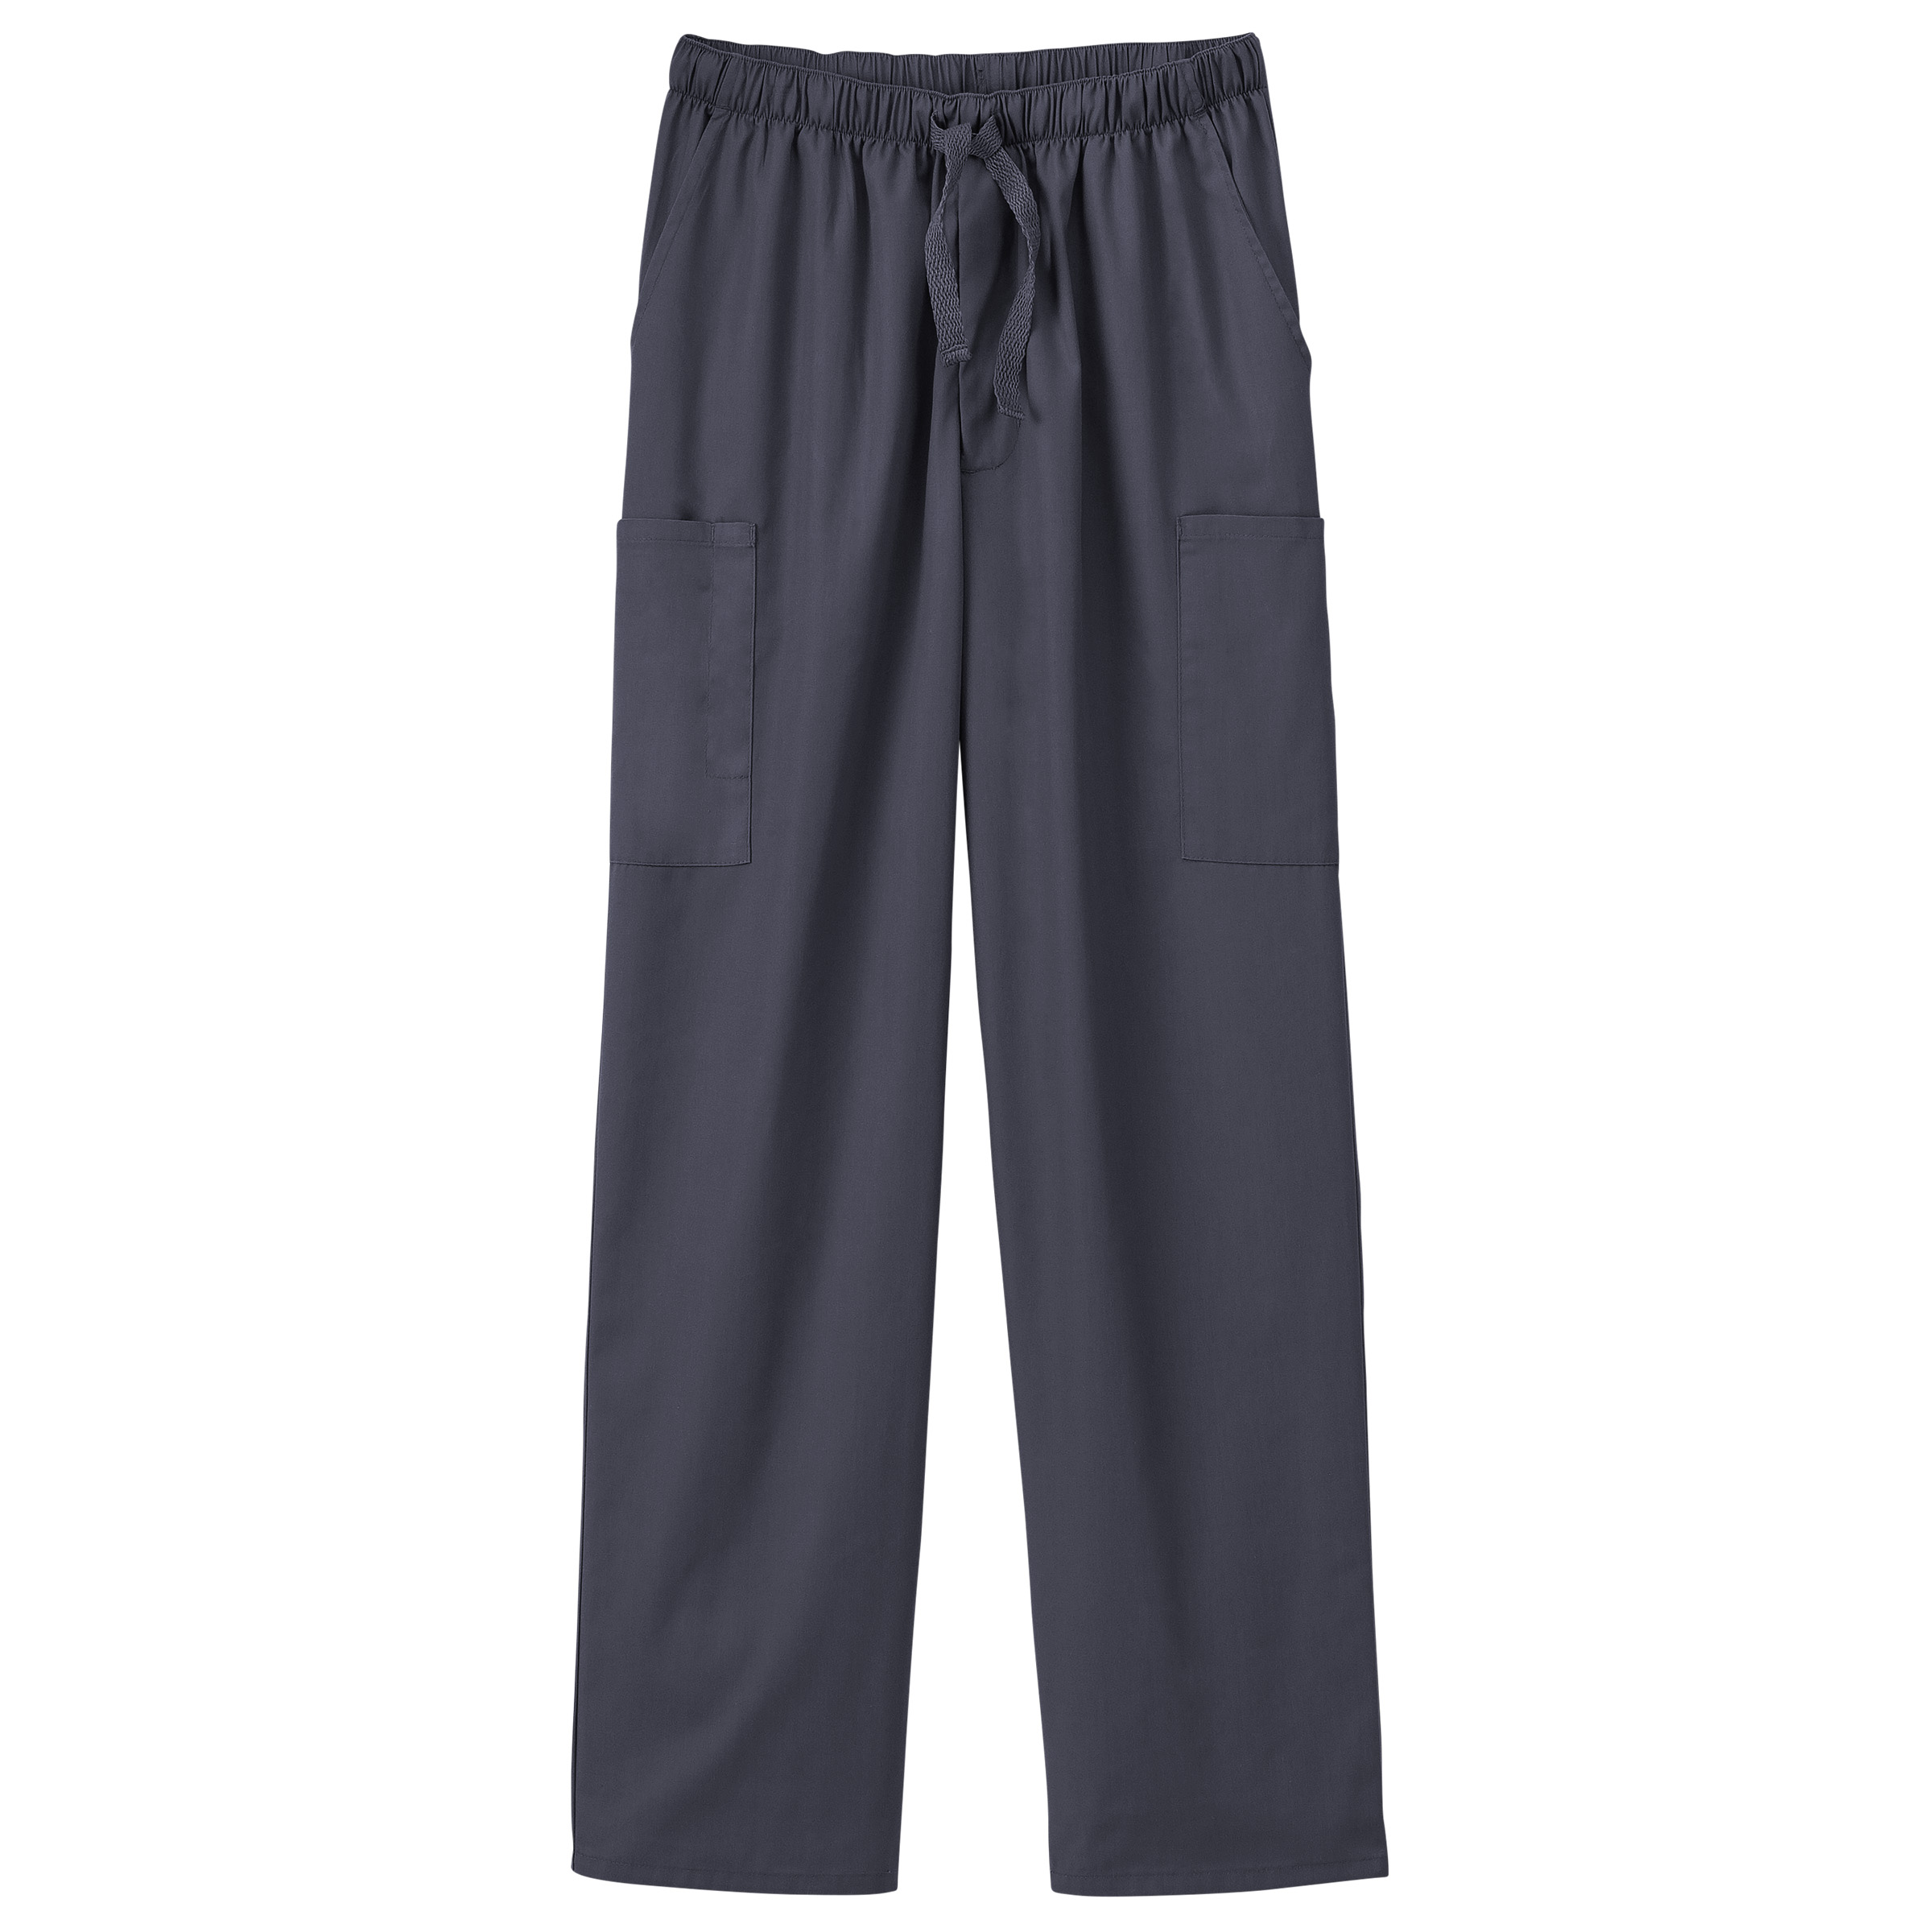 Fundamentals Unisex Five Pocket Pant-Fundamentals